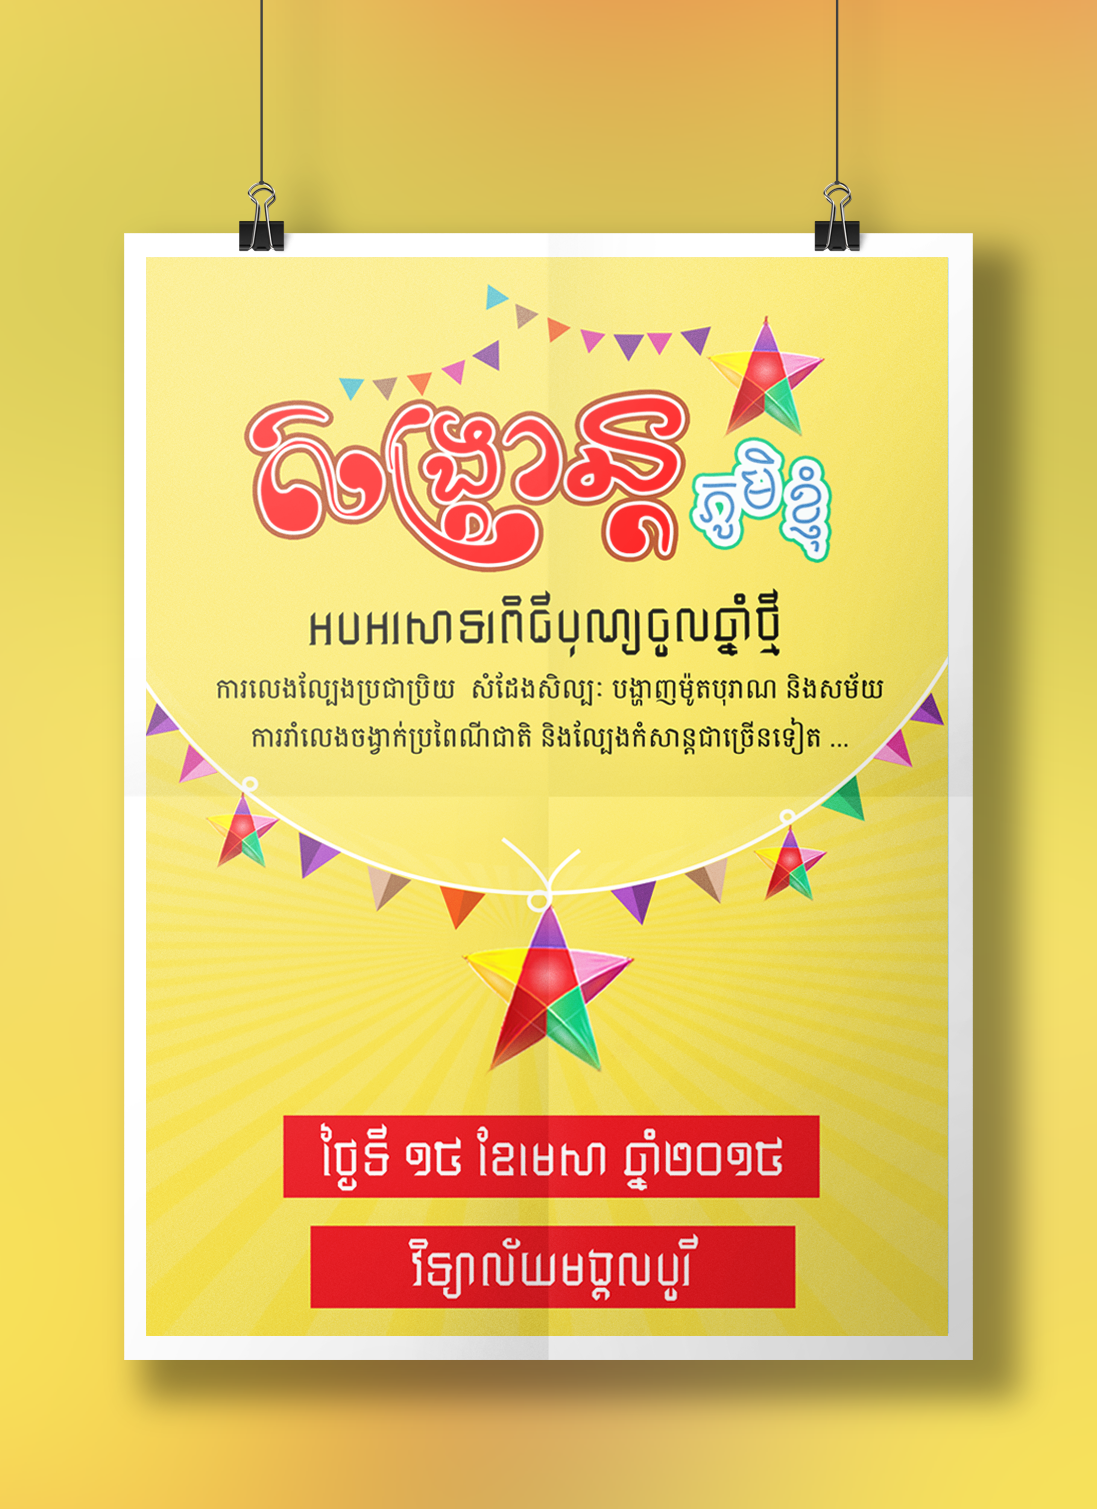 Khmer New Year Festival Poster Khmer New Year New Year Designs